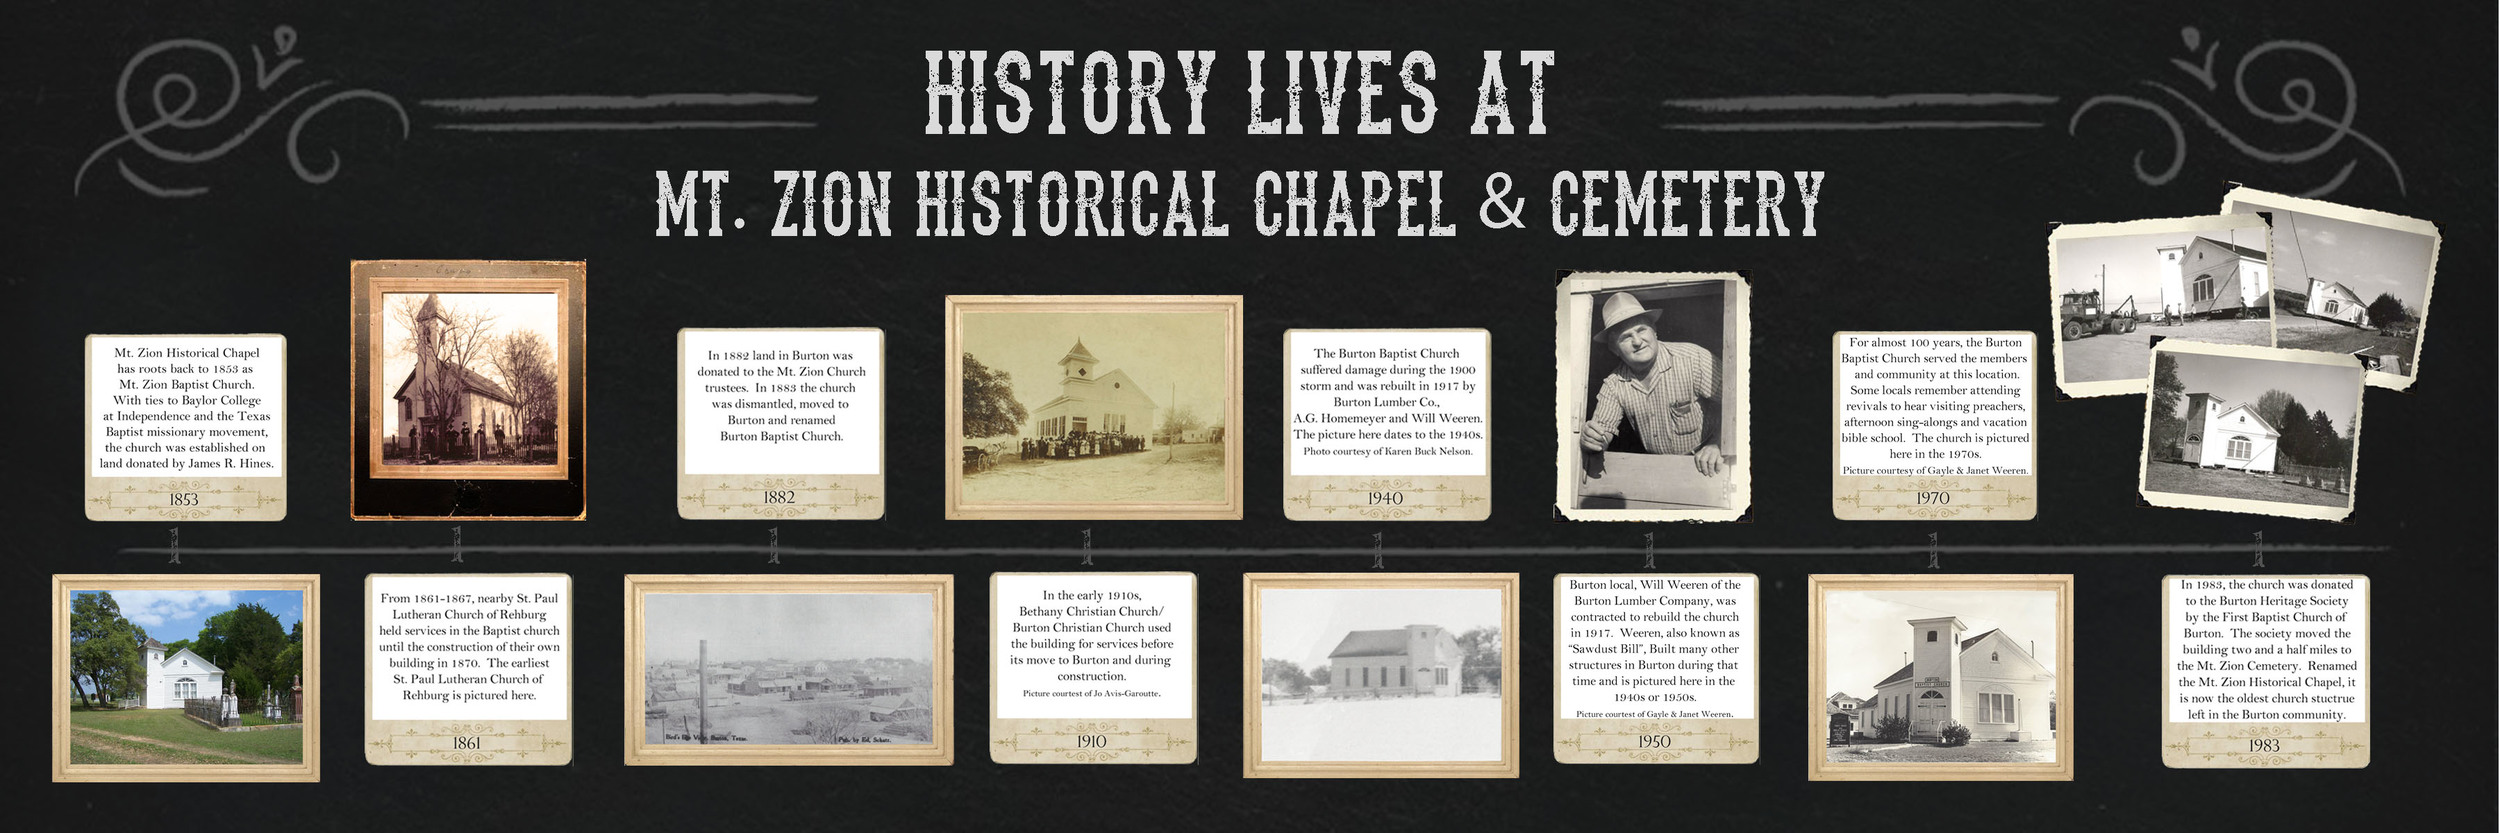 Brief history of Mt. Zion Historical Chapel and Cemetery, 2015